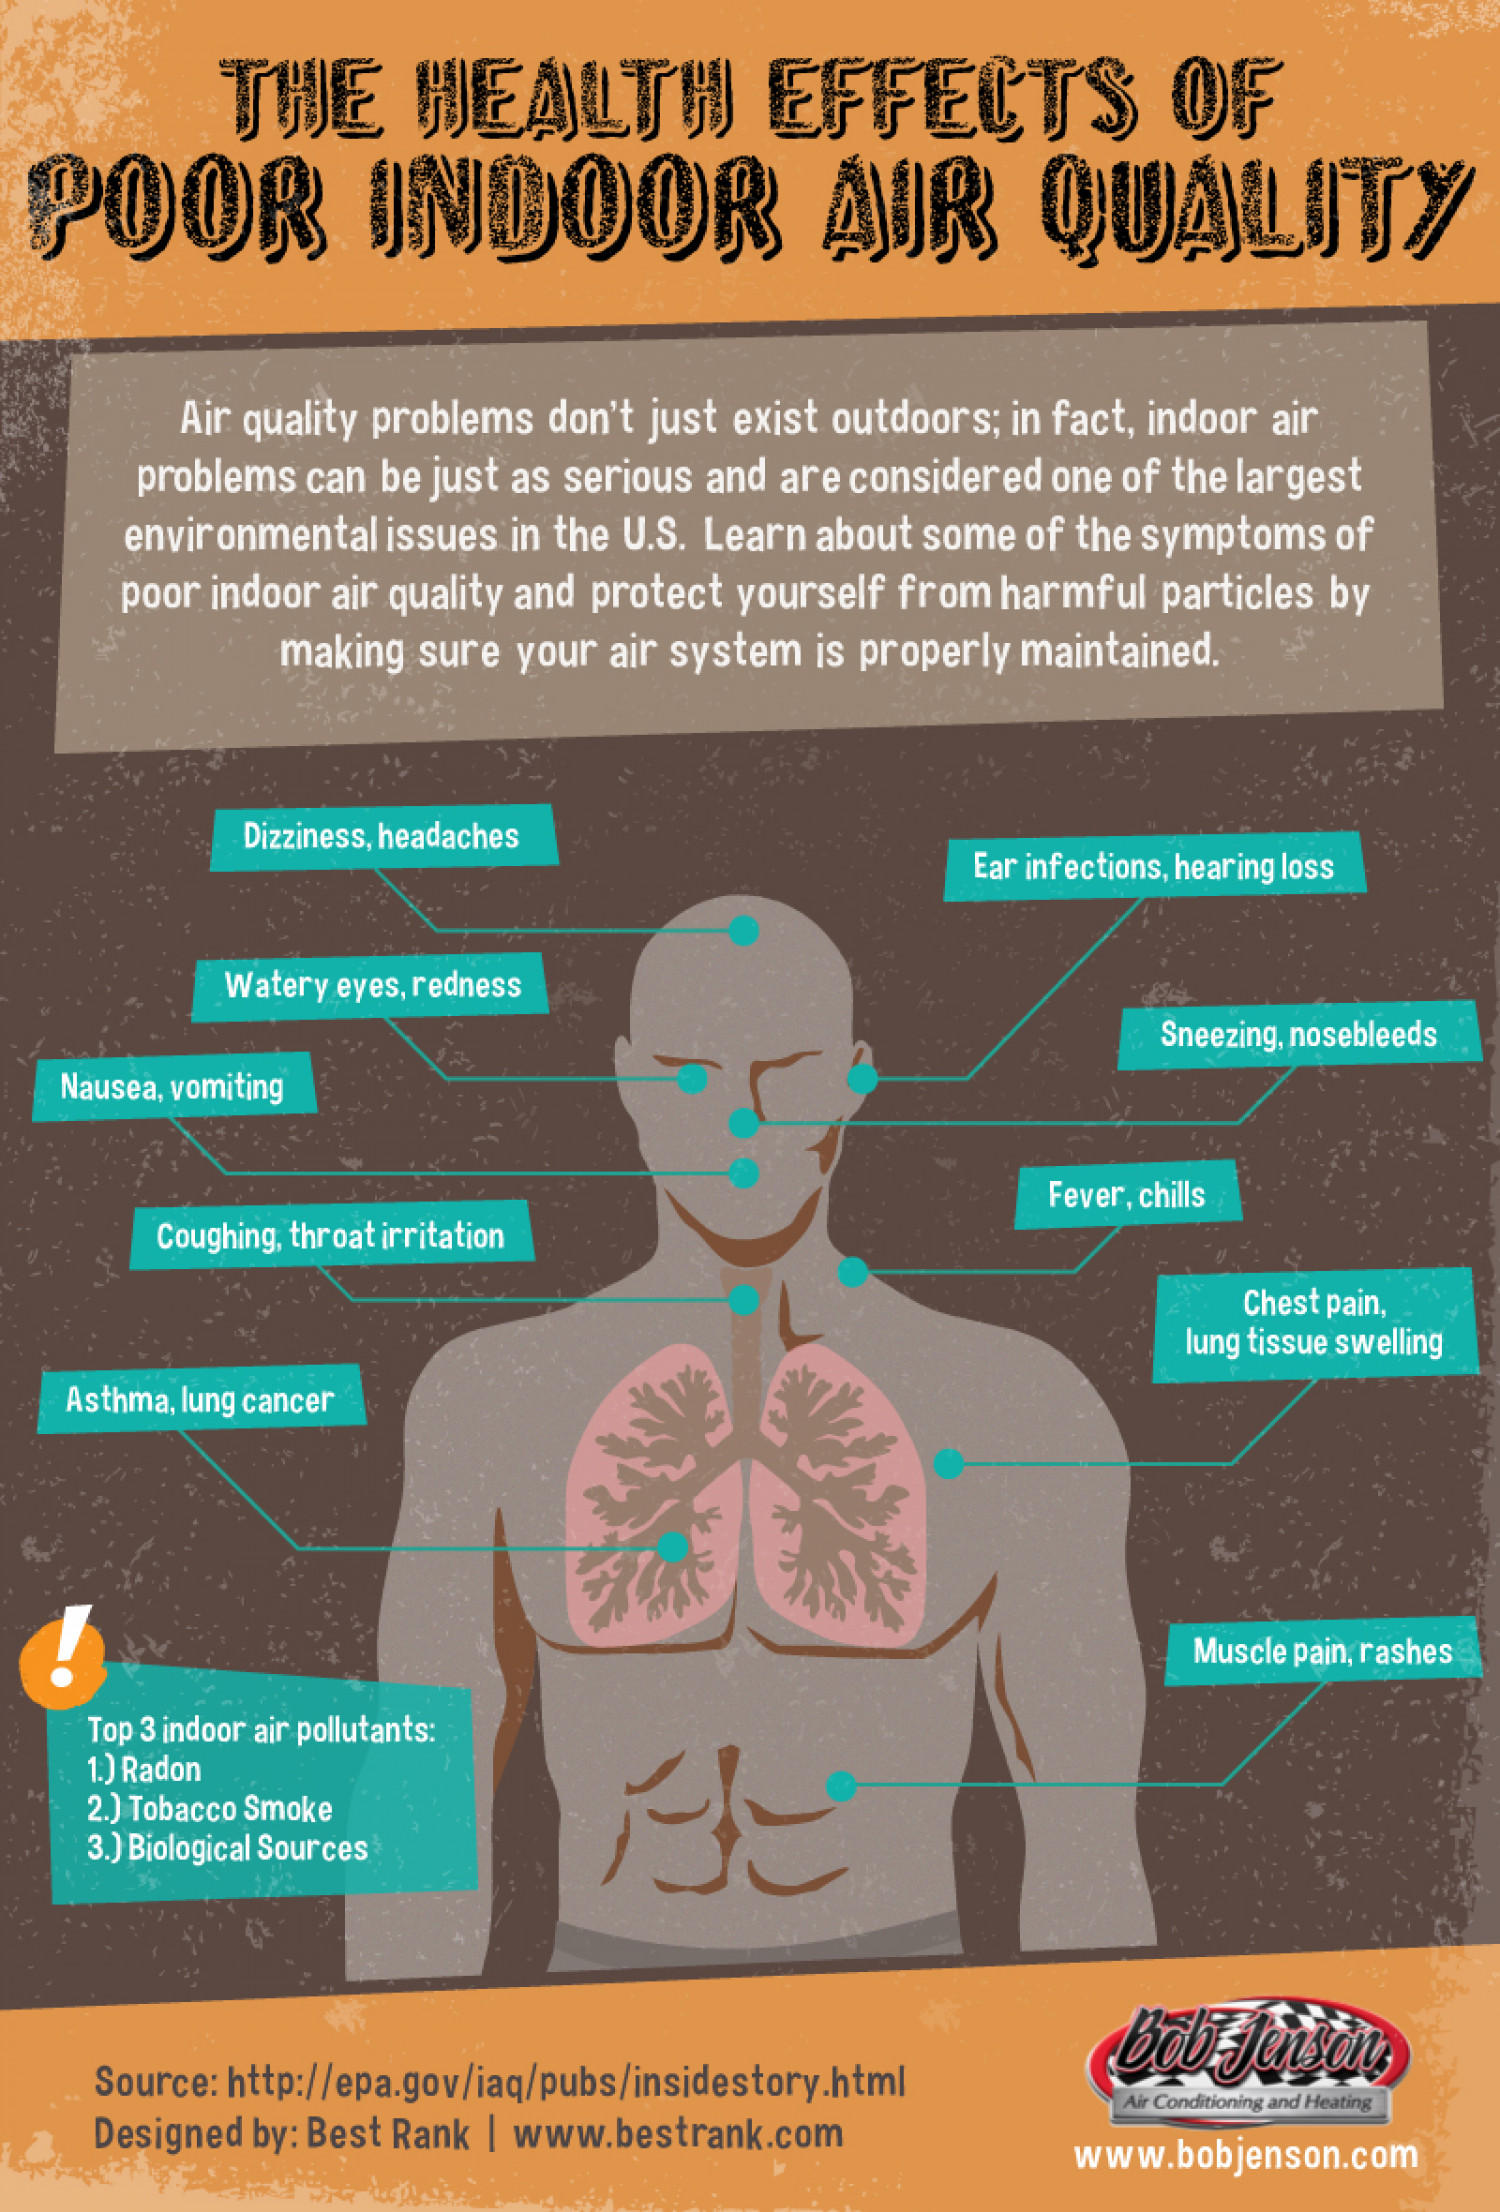 The Health Effects of Poor Indoor Air Quality Infographic